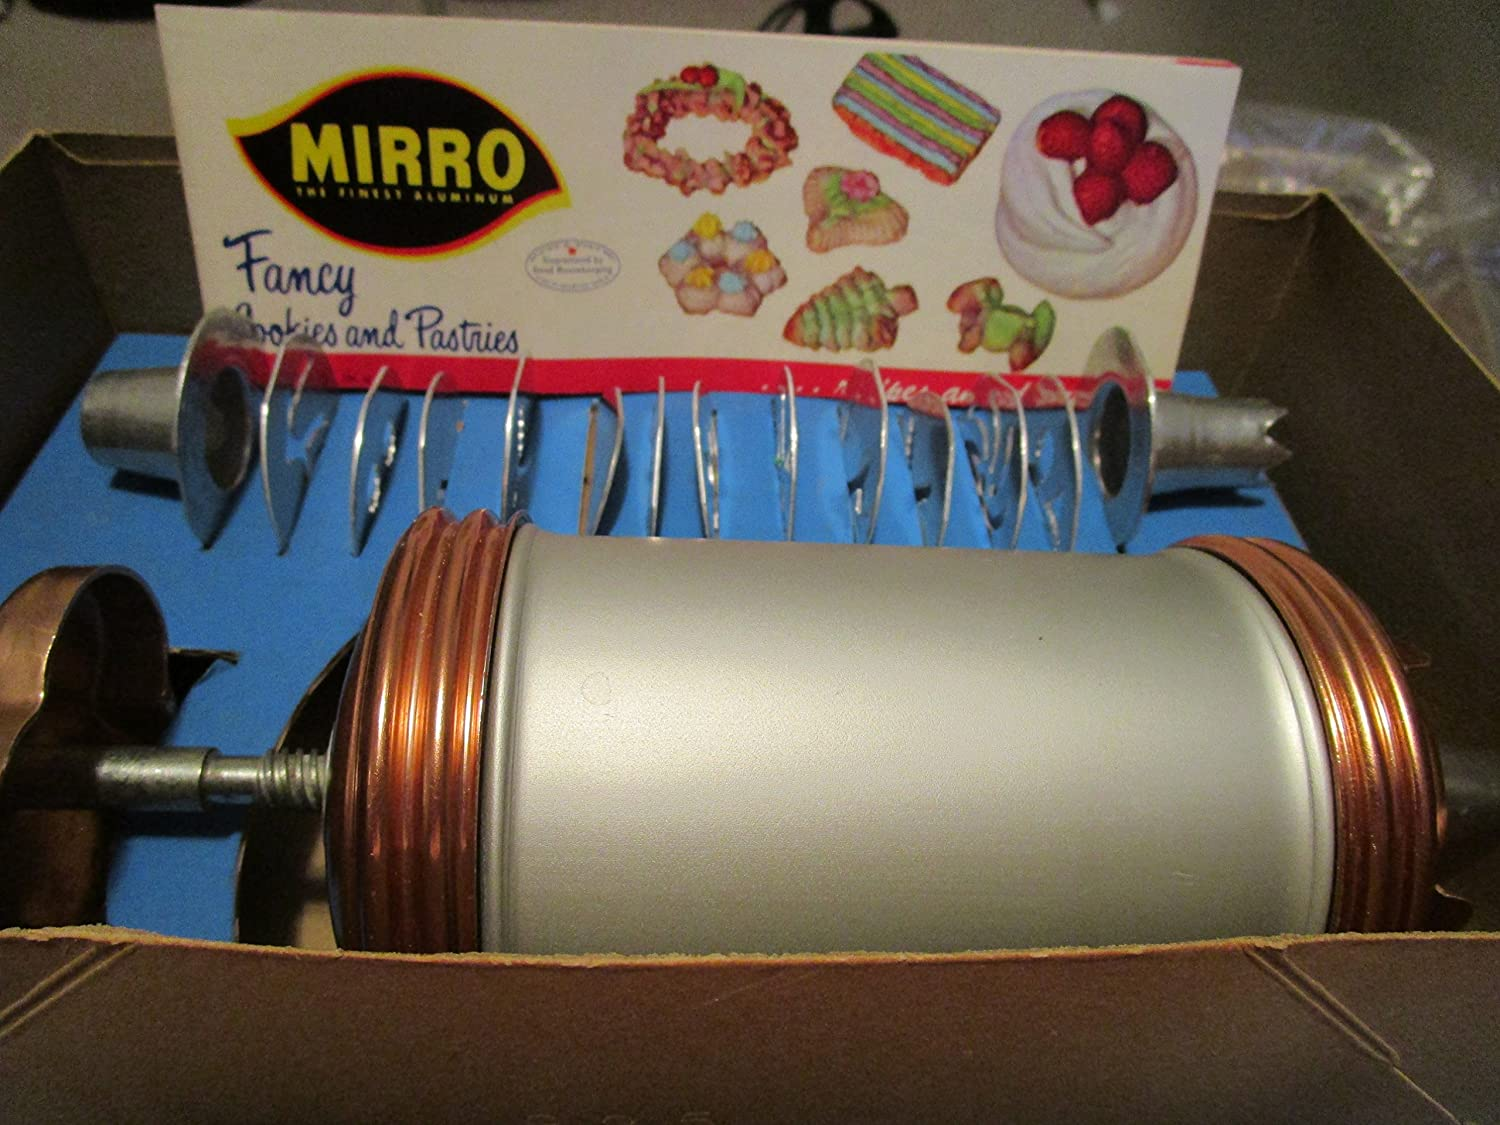 Mirro Aluminum Cooky Pastry Press for making Cookies, Cream Puffs, Meringue Shells, Eclairs, Lady Fingers -- NEW OLD STOCK